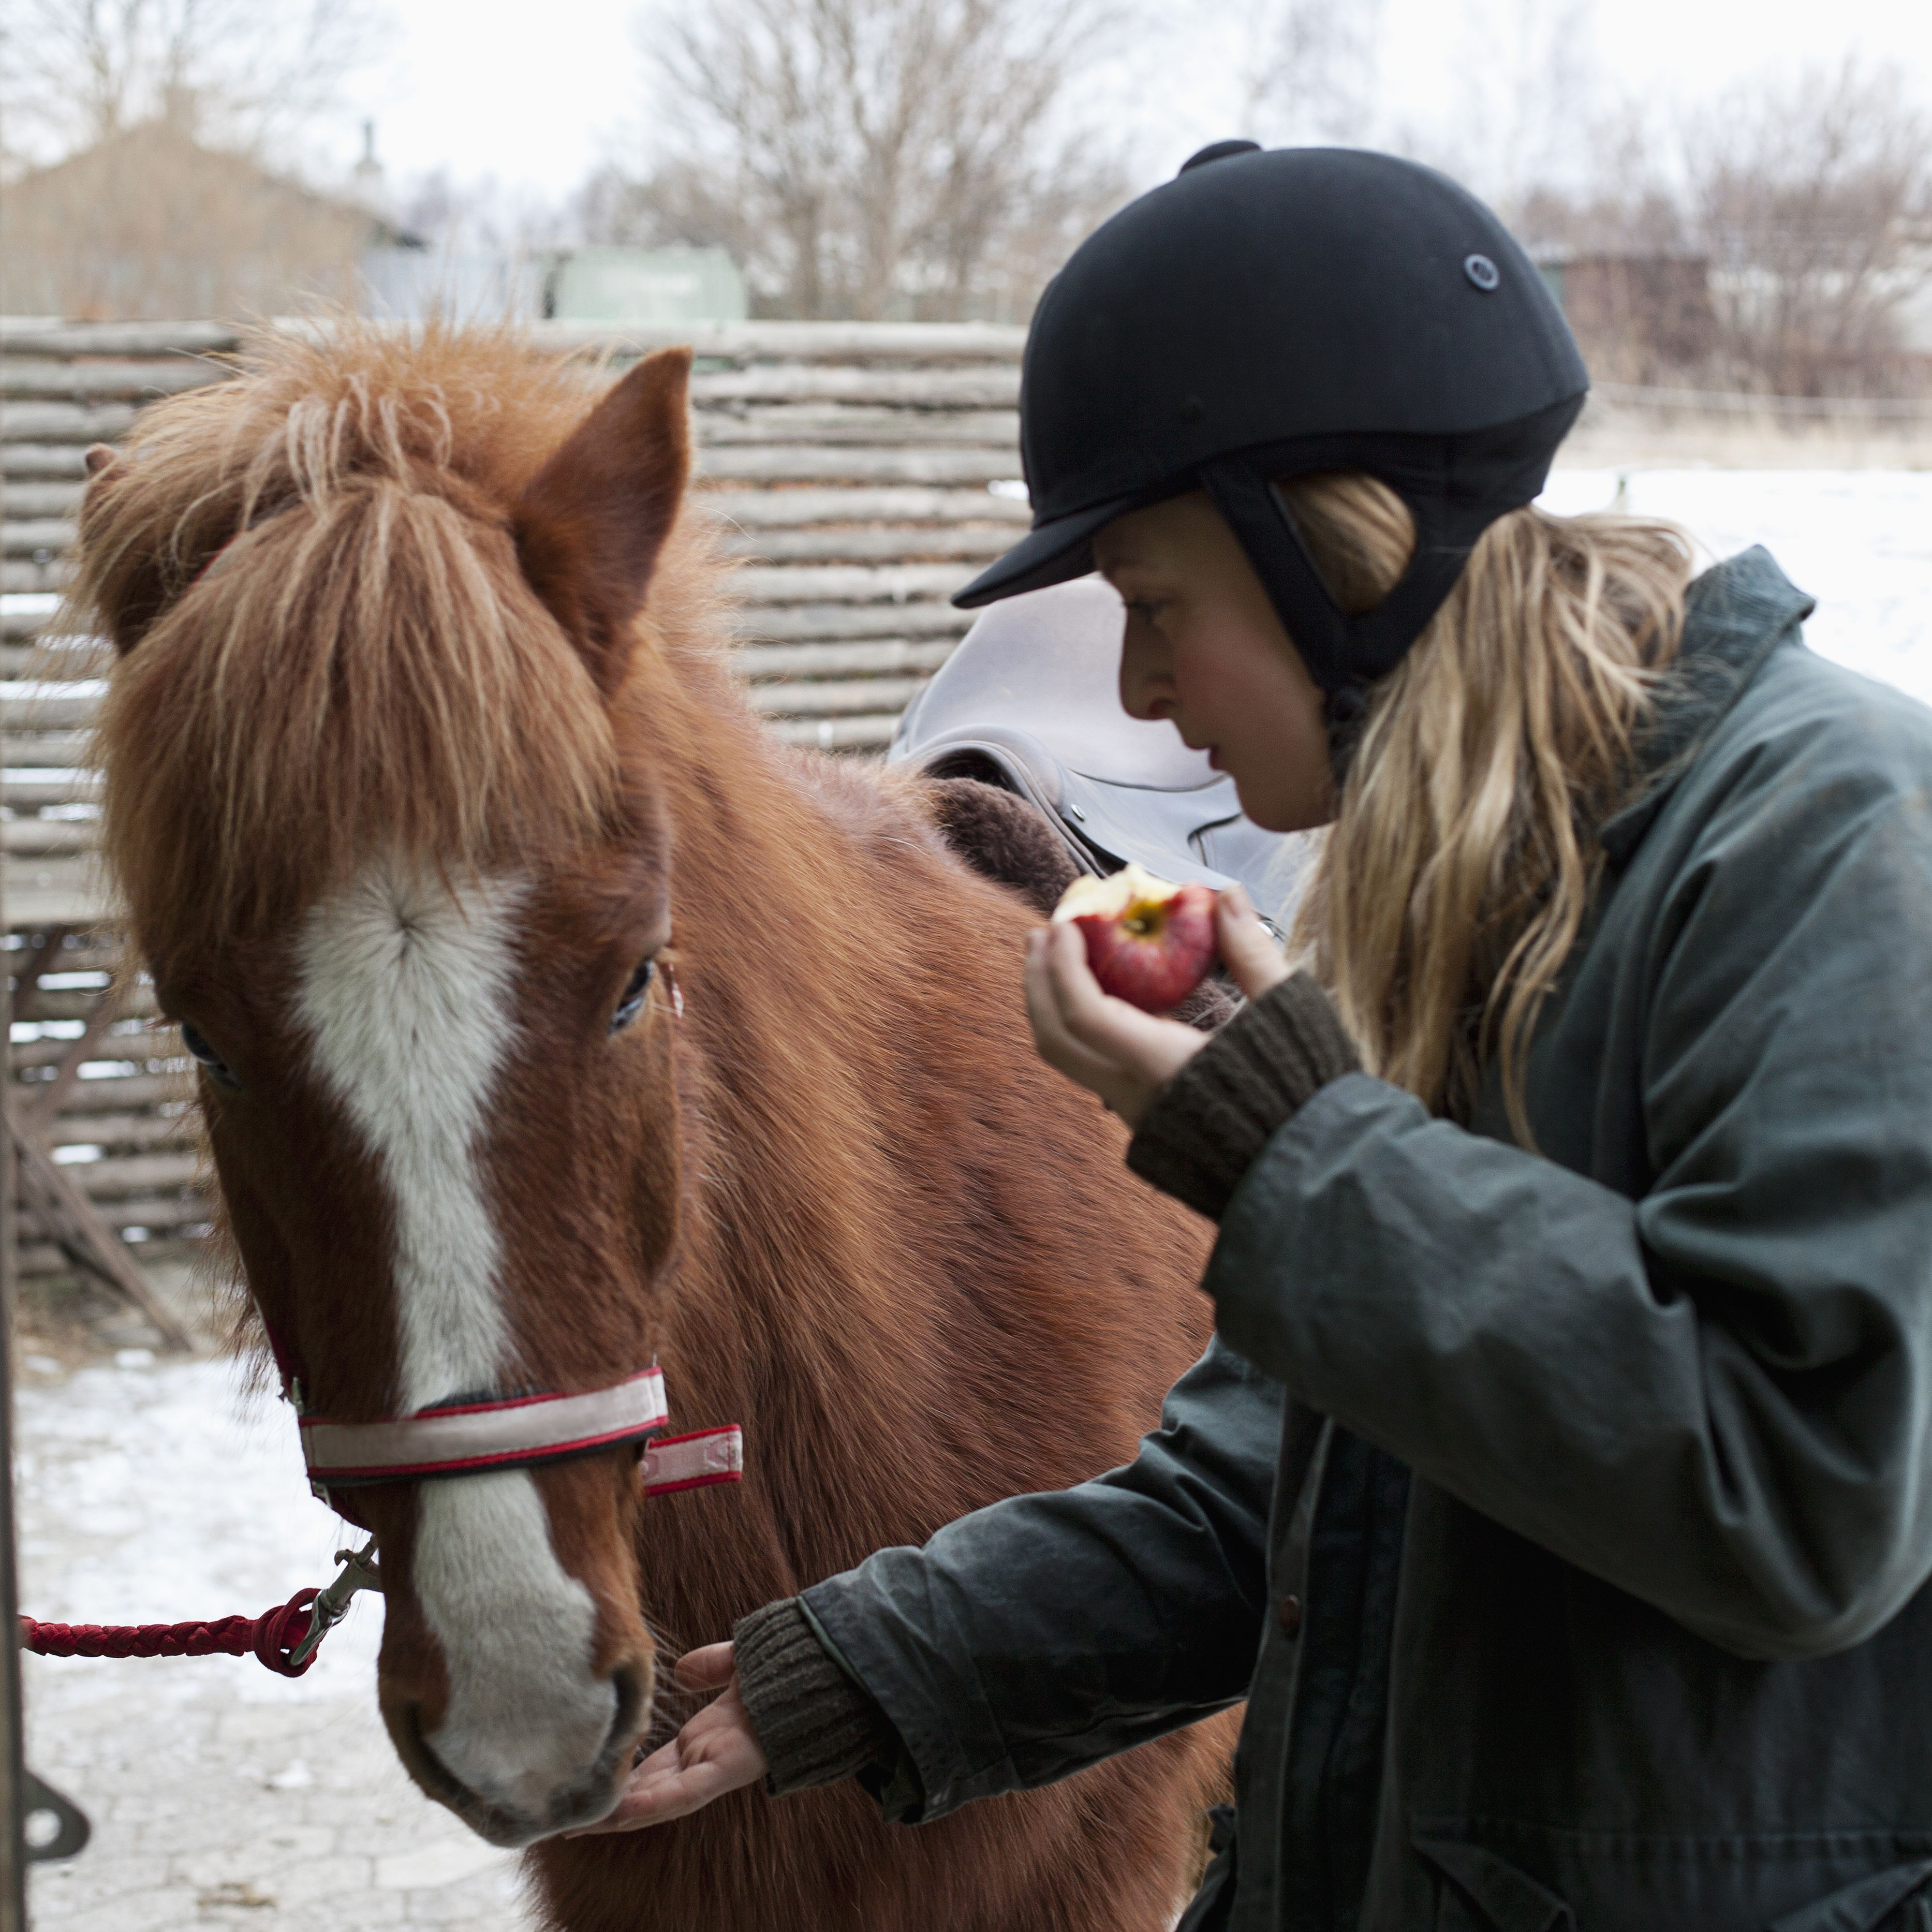 Woman feeding apple to horse outdoors